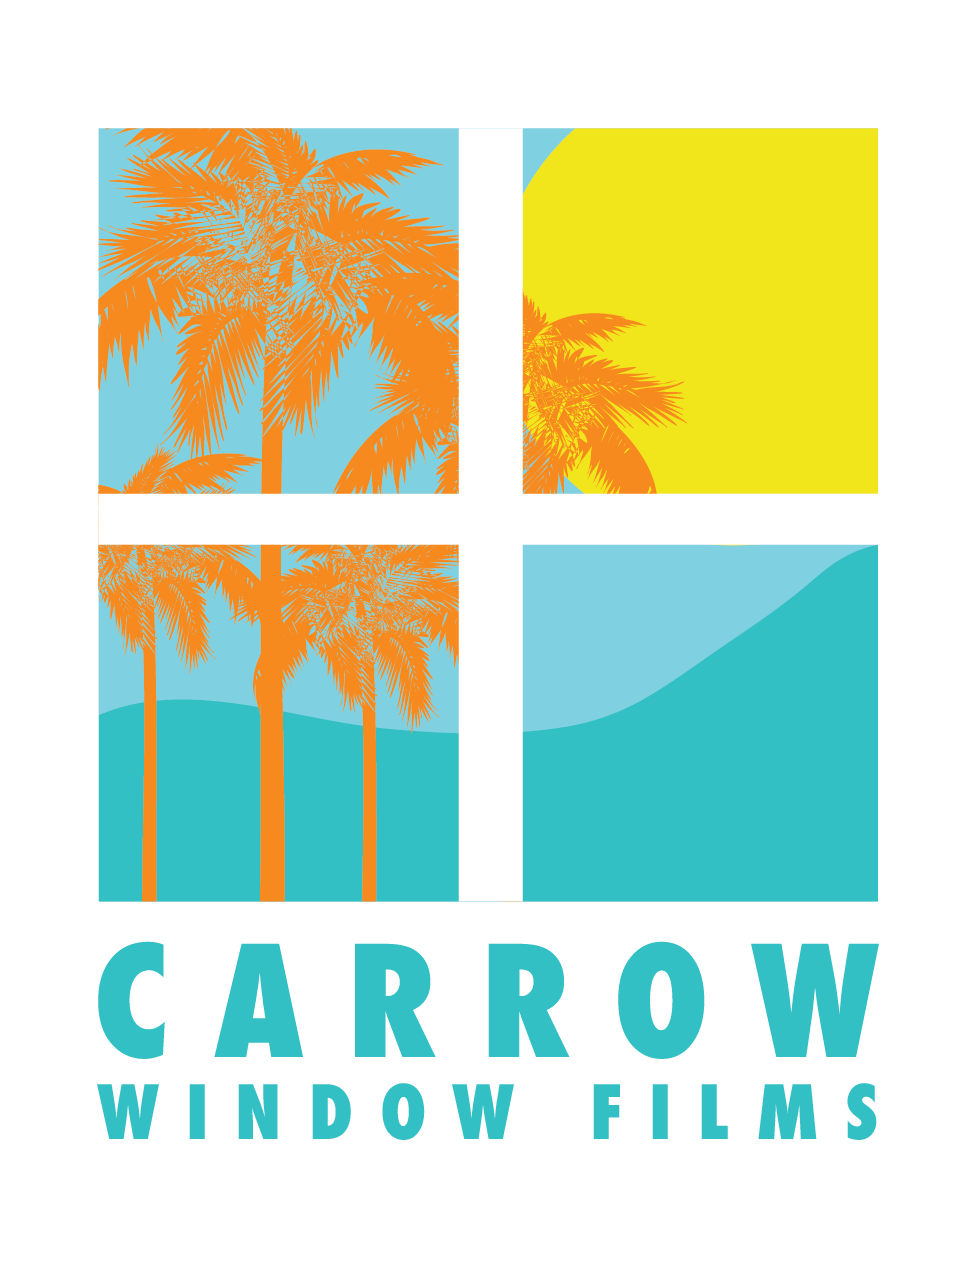 Carrow Window Films - Window Films and Tinting in Destin, FL